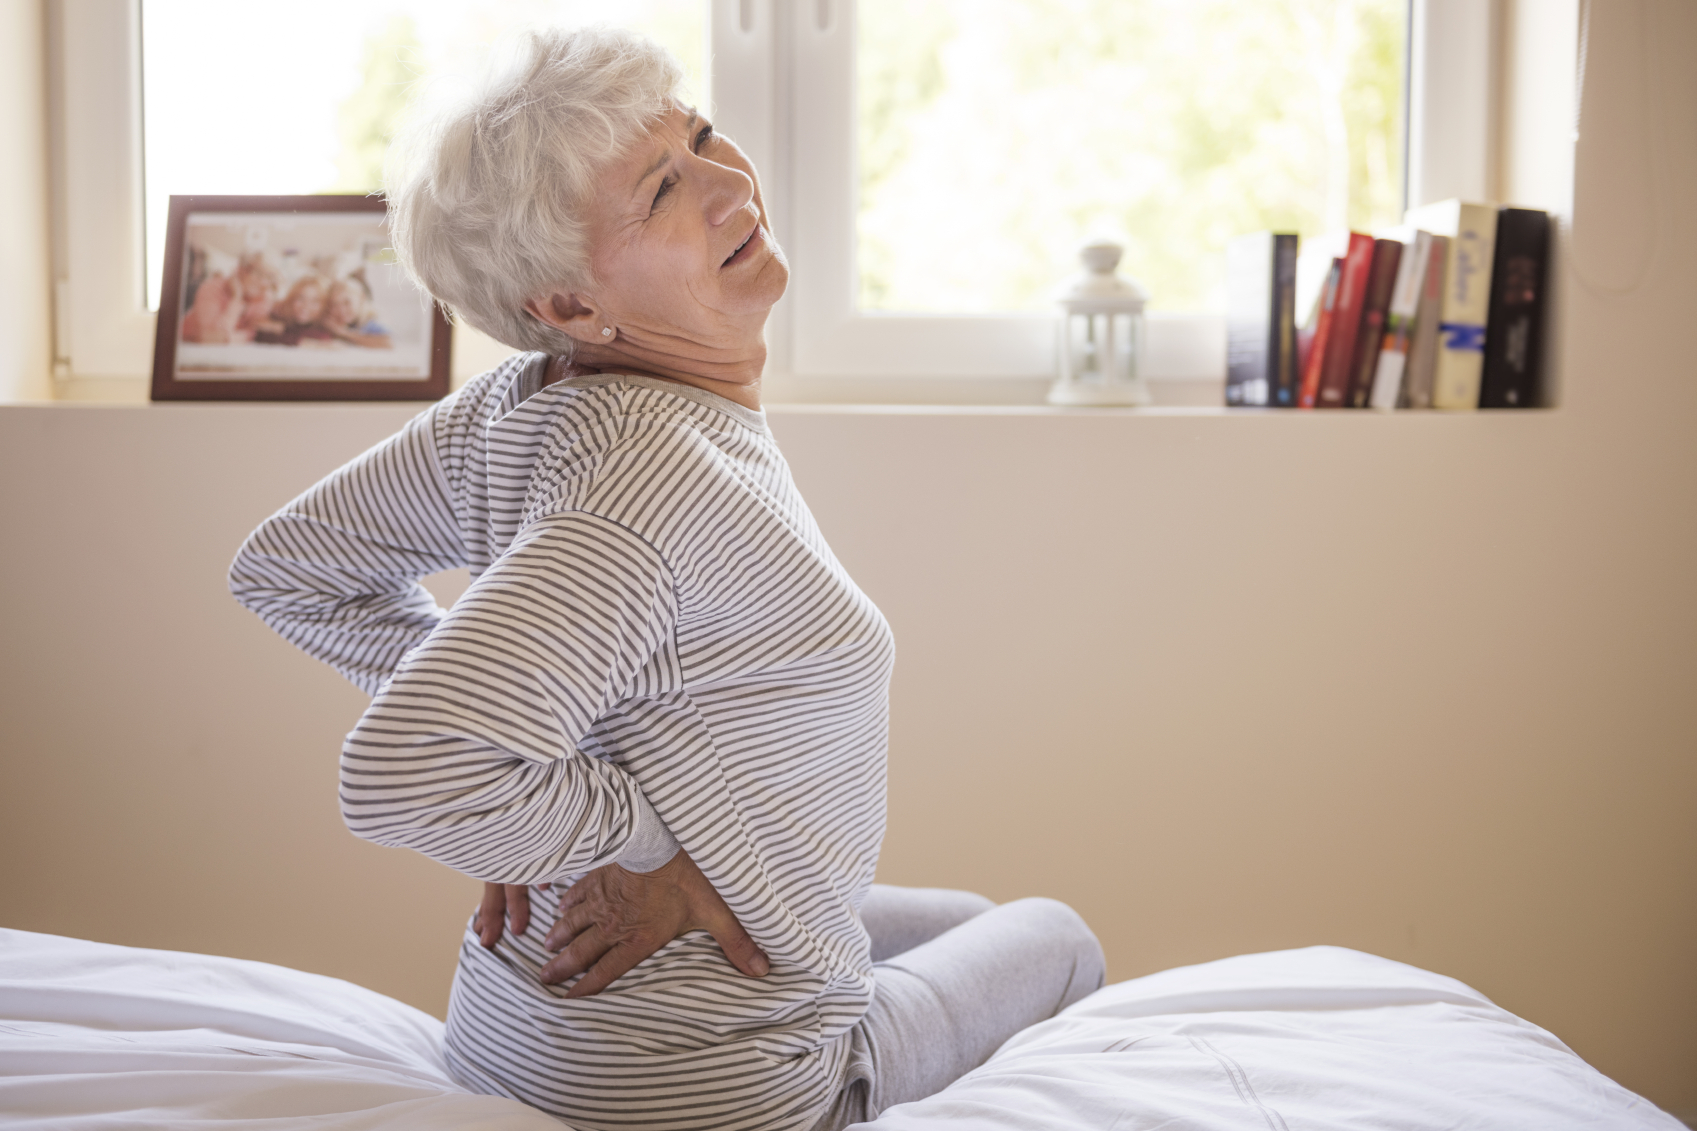 Mattresses for back pain